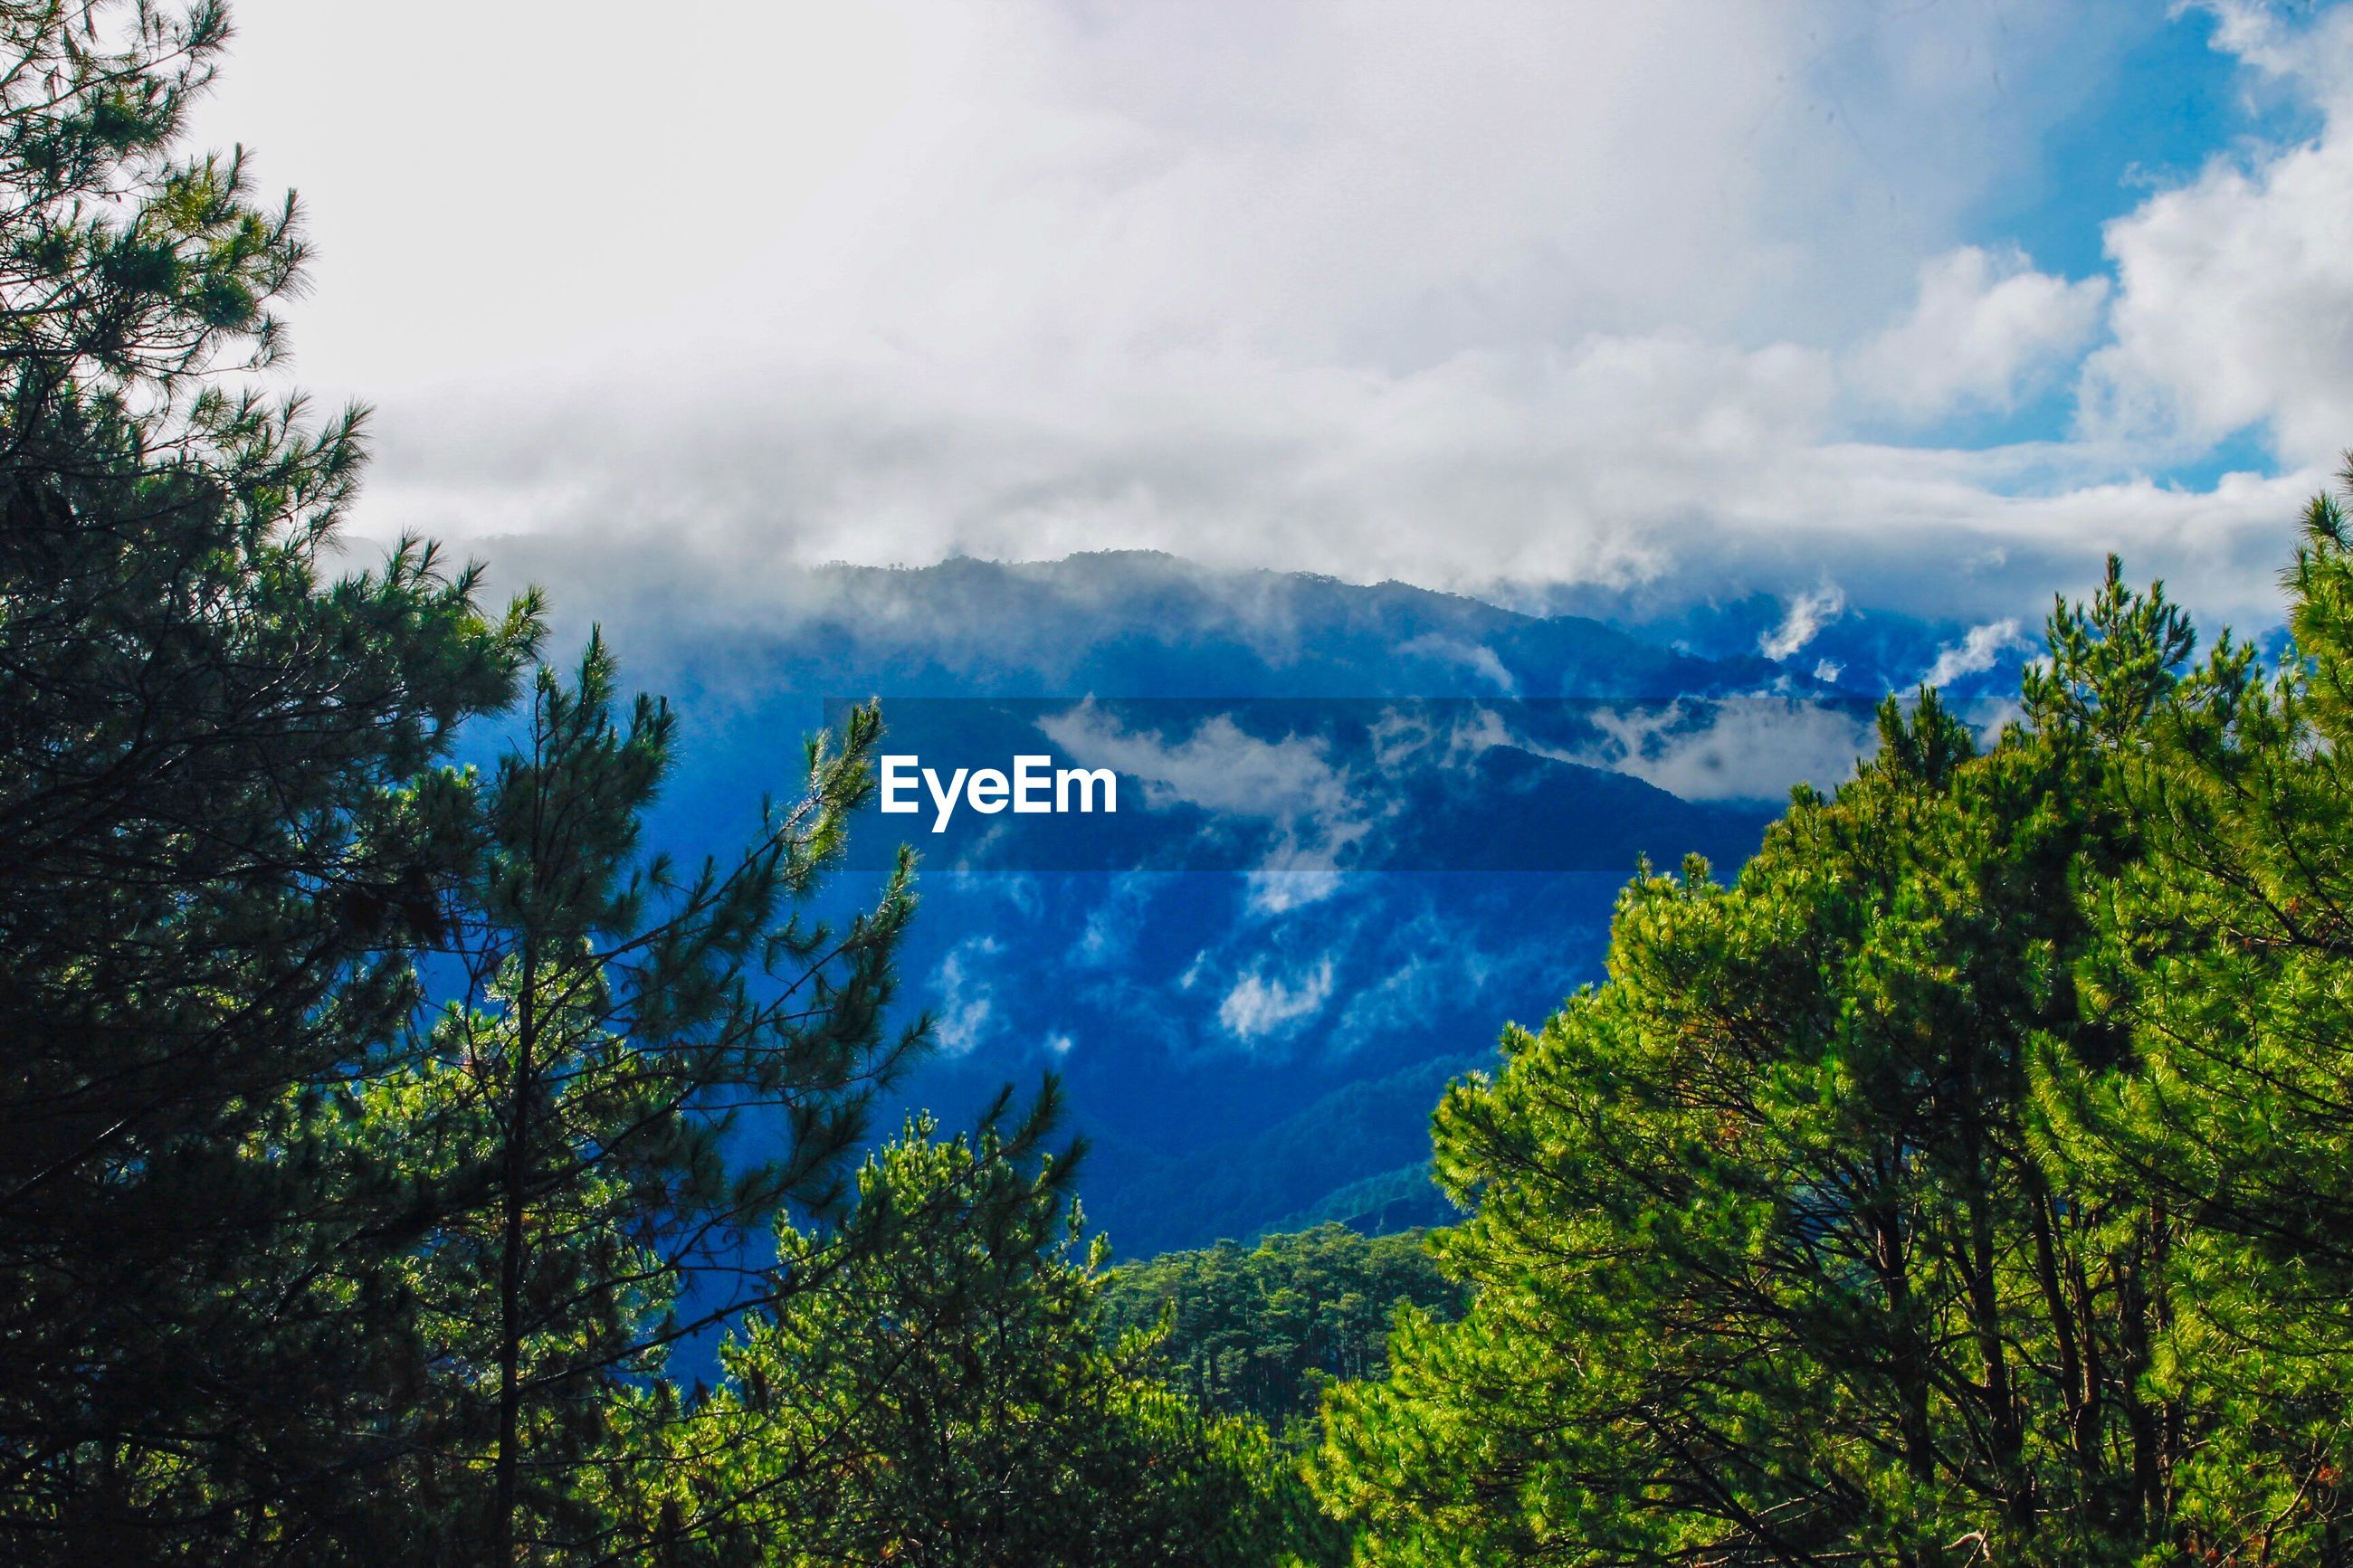 LOW ANGLE VIEW OF TREES AND MOUNTAINS AGAINST SKY